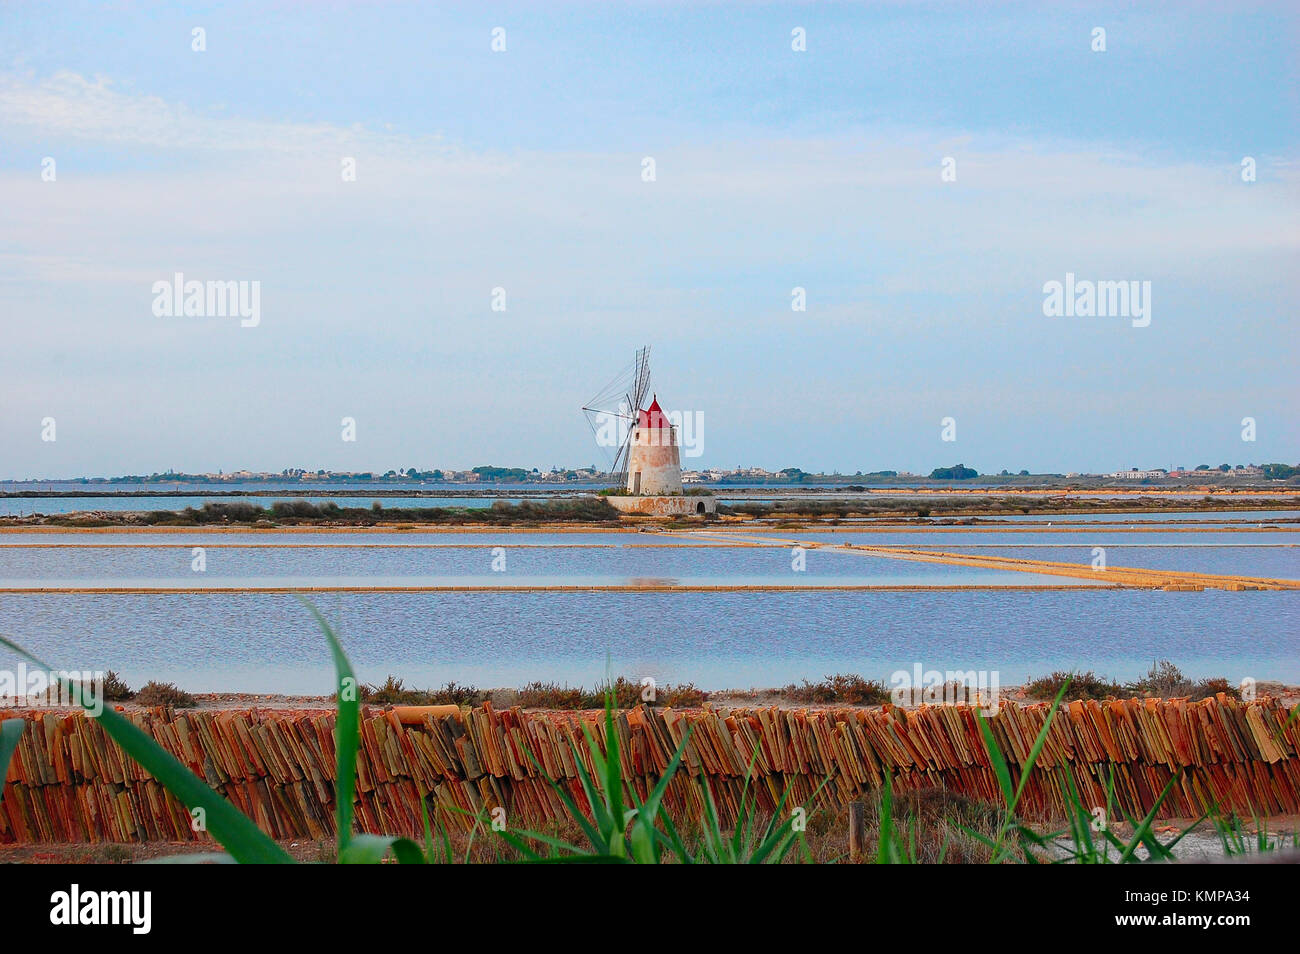 Sicilian landscape typical of southern Italy, in the Center is in the old windmill in the middle of a field of salt - Stock Image